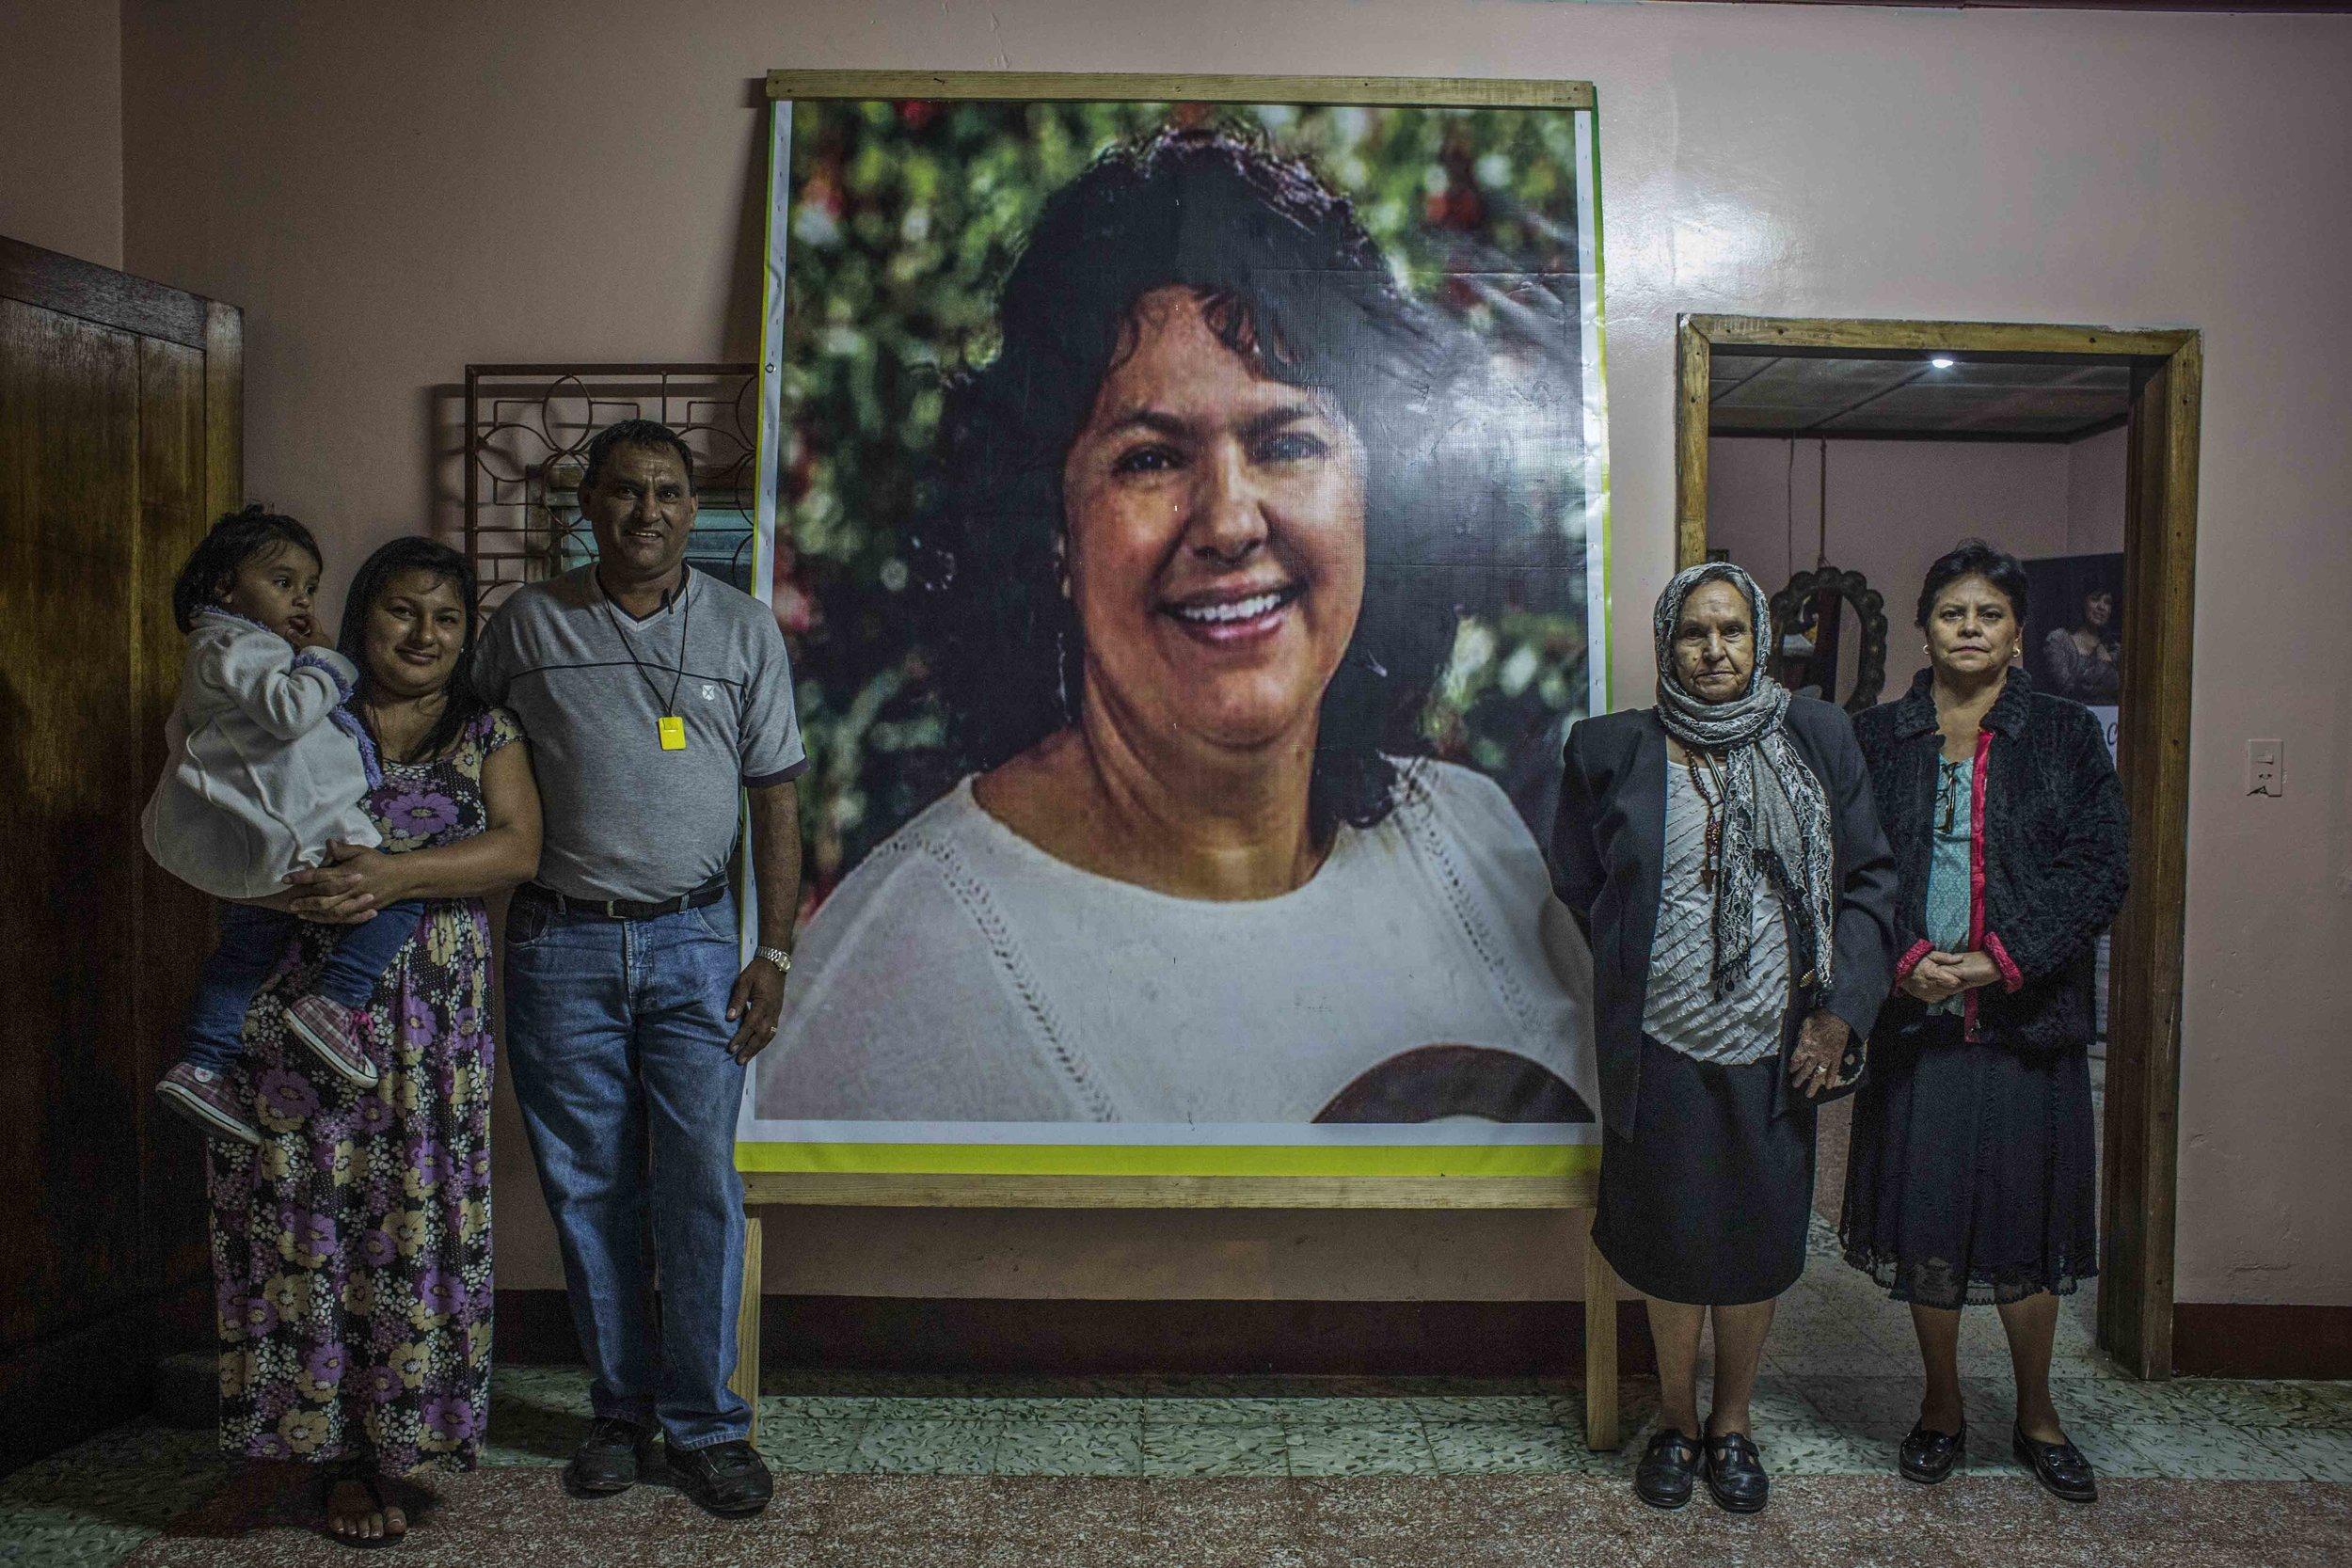 The family of Berta Caceres, mother's sister and brother-in-law with her daughter, posing next to poster of Berta , affixed at the entrance of the family home, in the city of La Esperanza, Honduras.